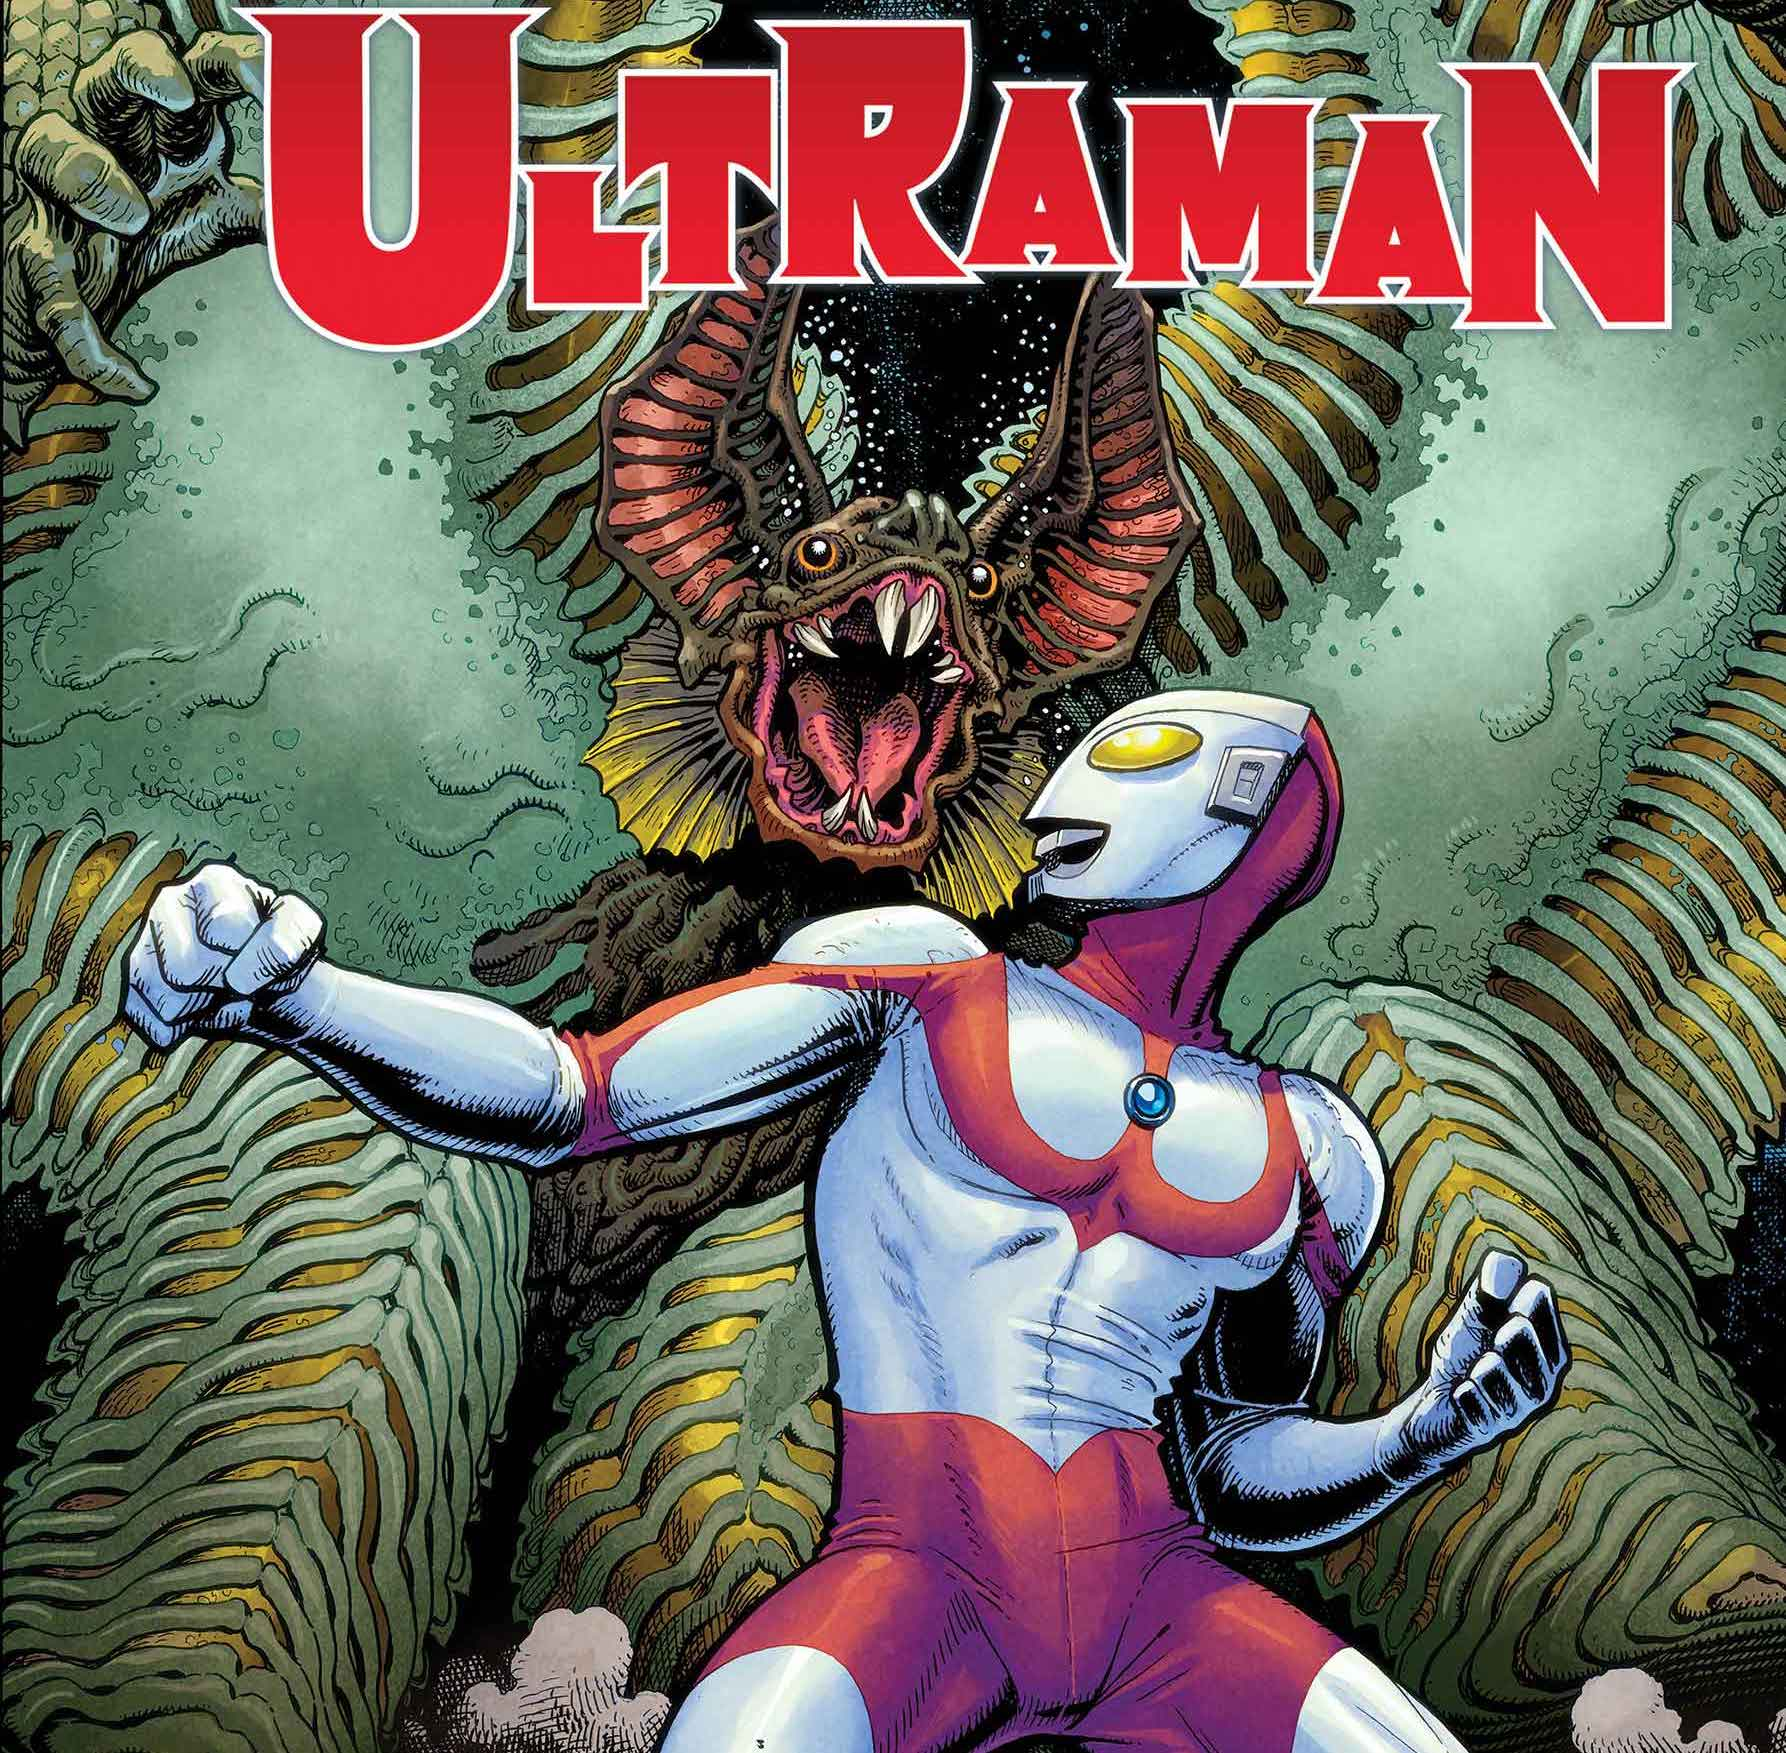 'The Trials of Ultraman' #1 and the complicated life of a 10 story tall hero